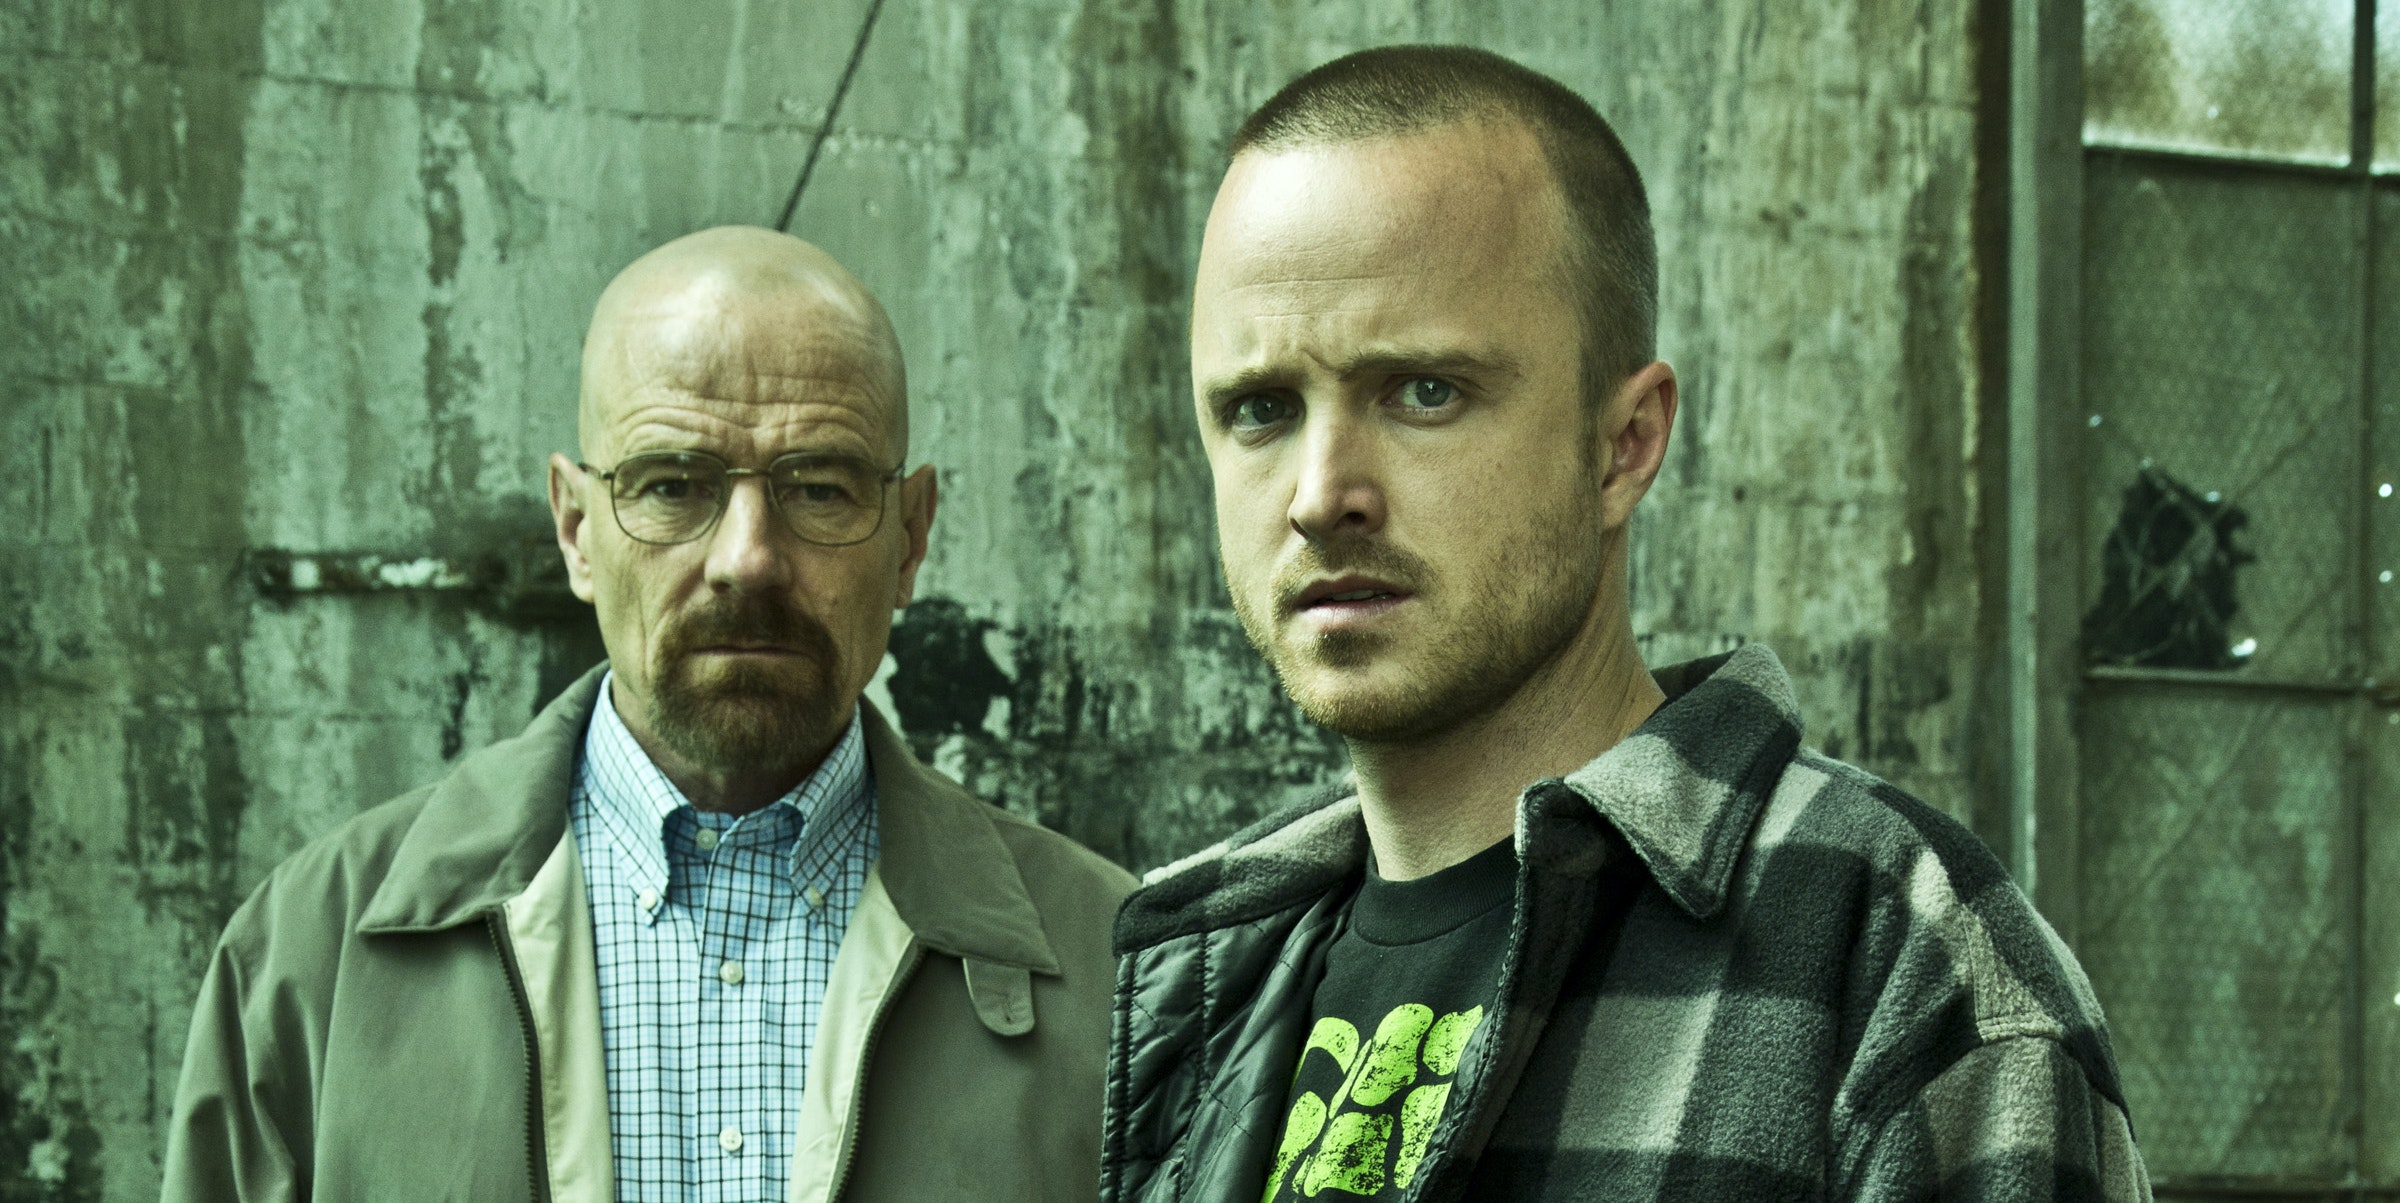 'Breaking Bad' Movie Finally Reveals What Happens After the Final Episode